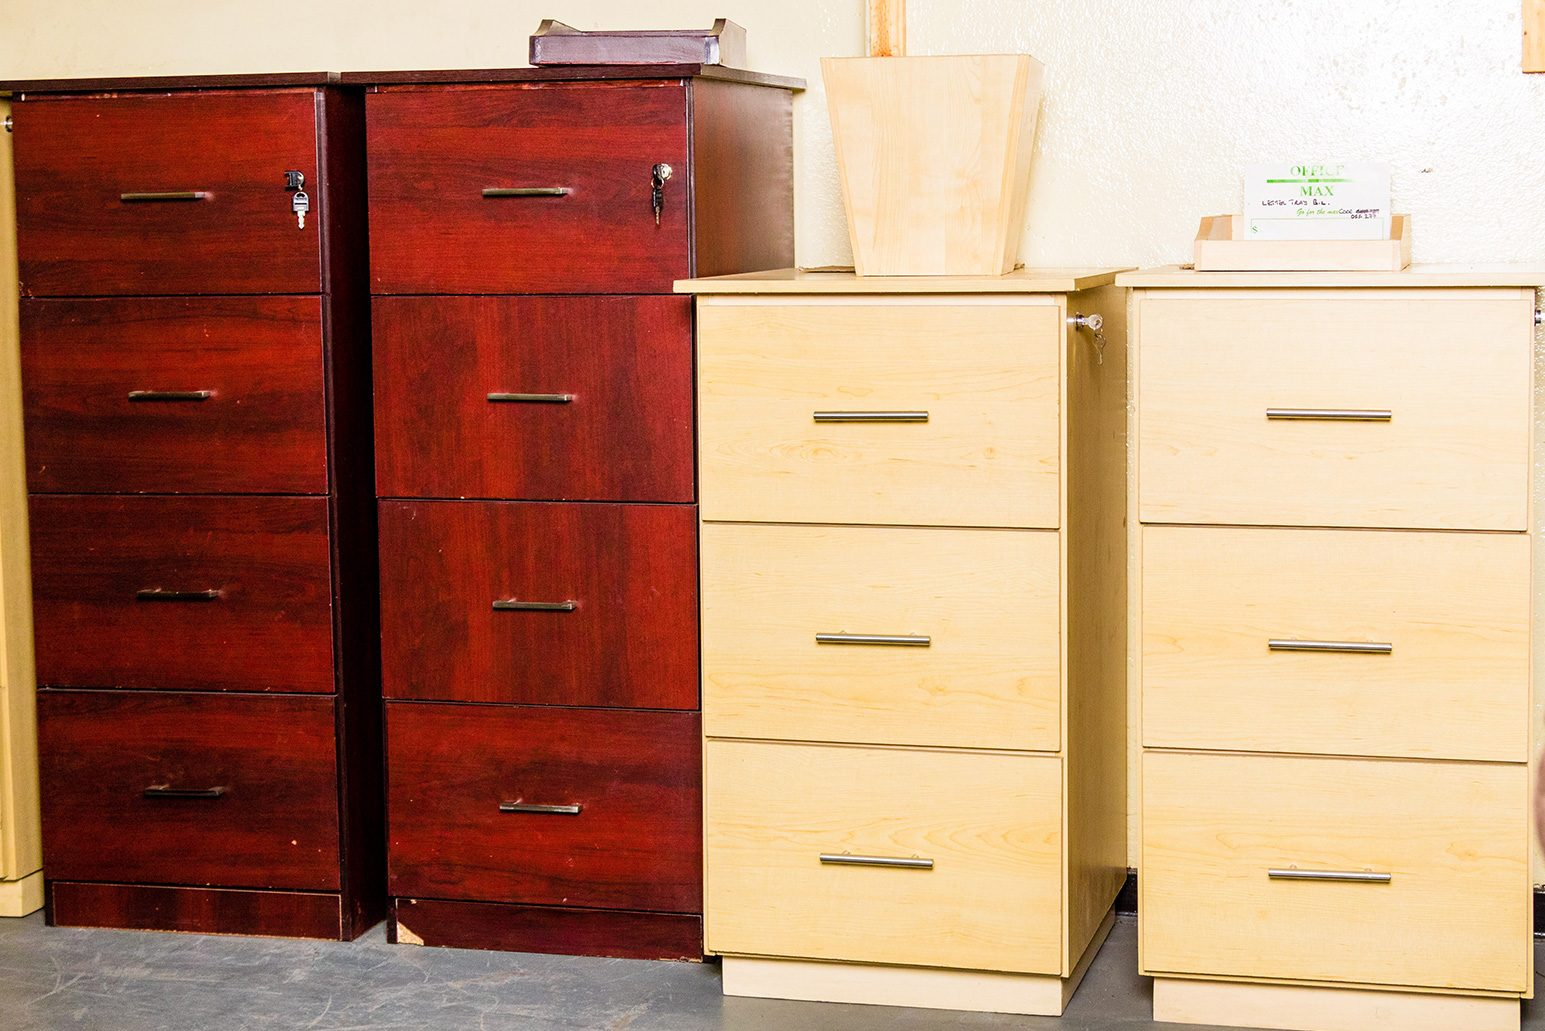 3-&-4-DRAWER-WOODEN-FILING-CABINETS